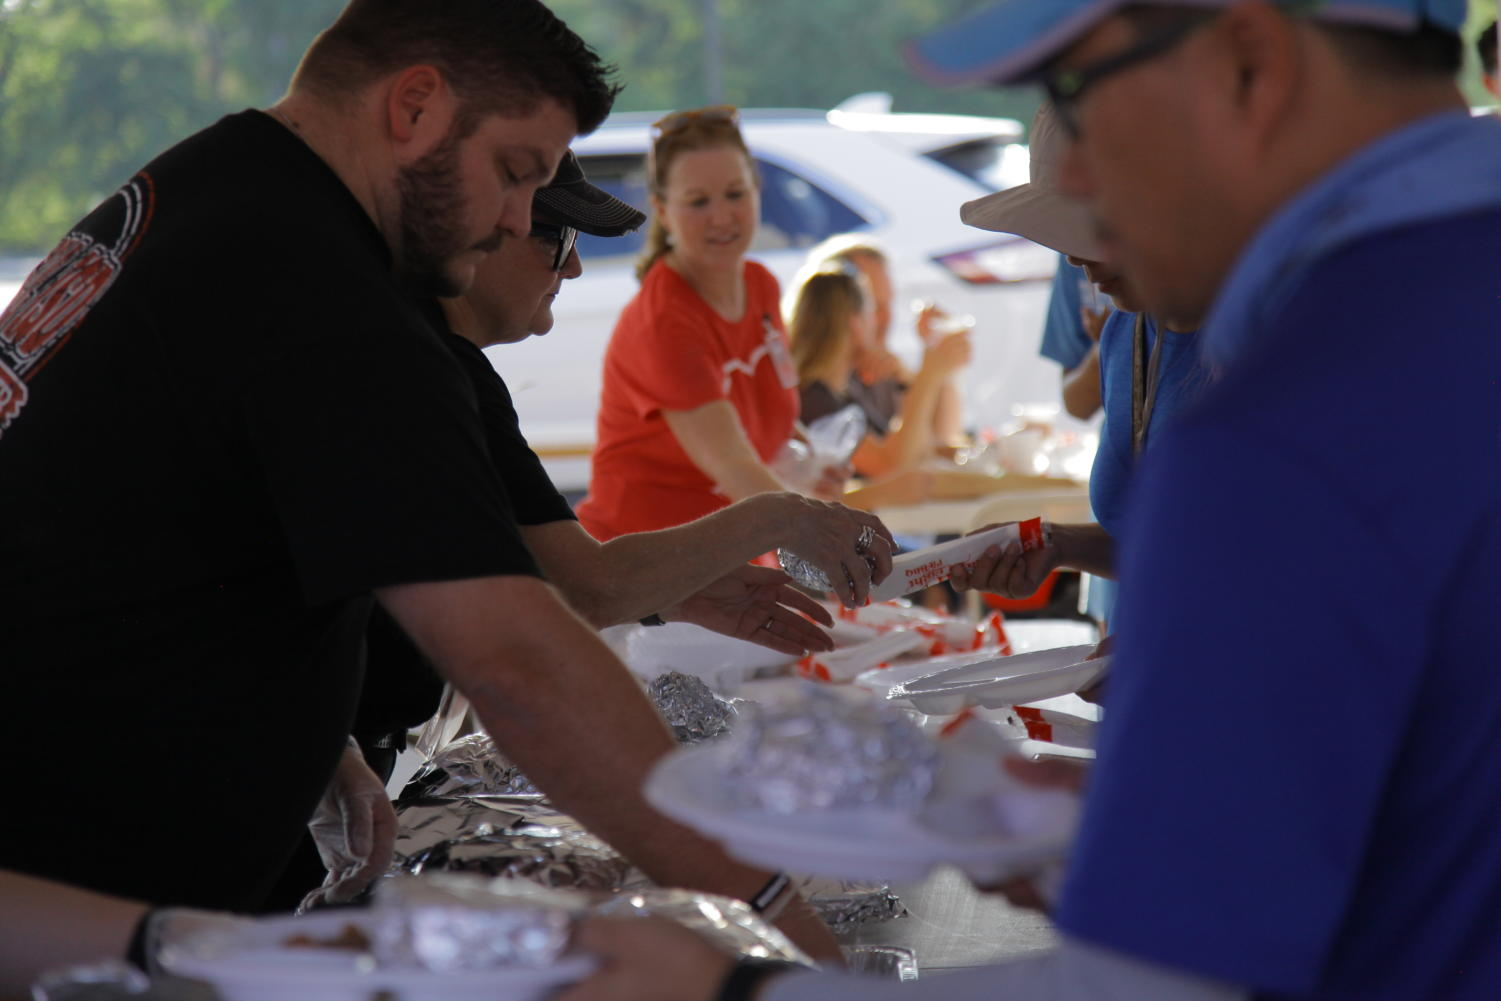 CHS9 Principal Cody Koontz serves food to parents, teachers and children. Coppell ISD hosted its home game tailgate in the Buddy Echols Field parking lot on Friday before the football game against Hebron.